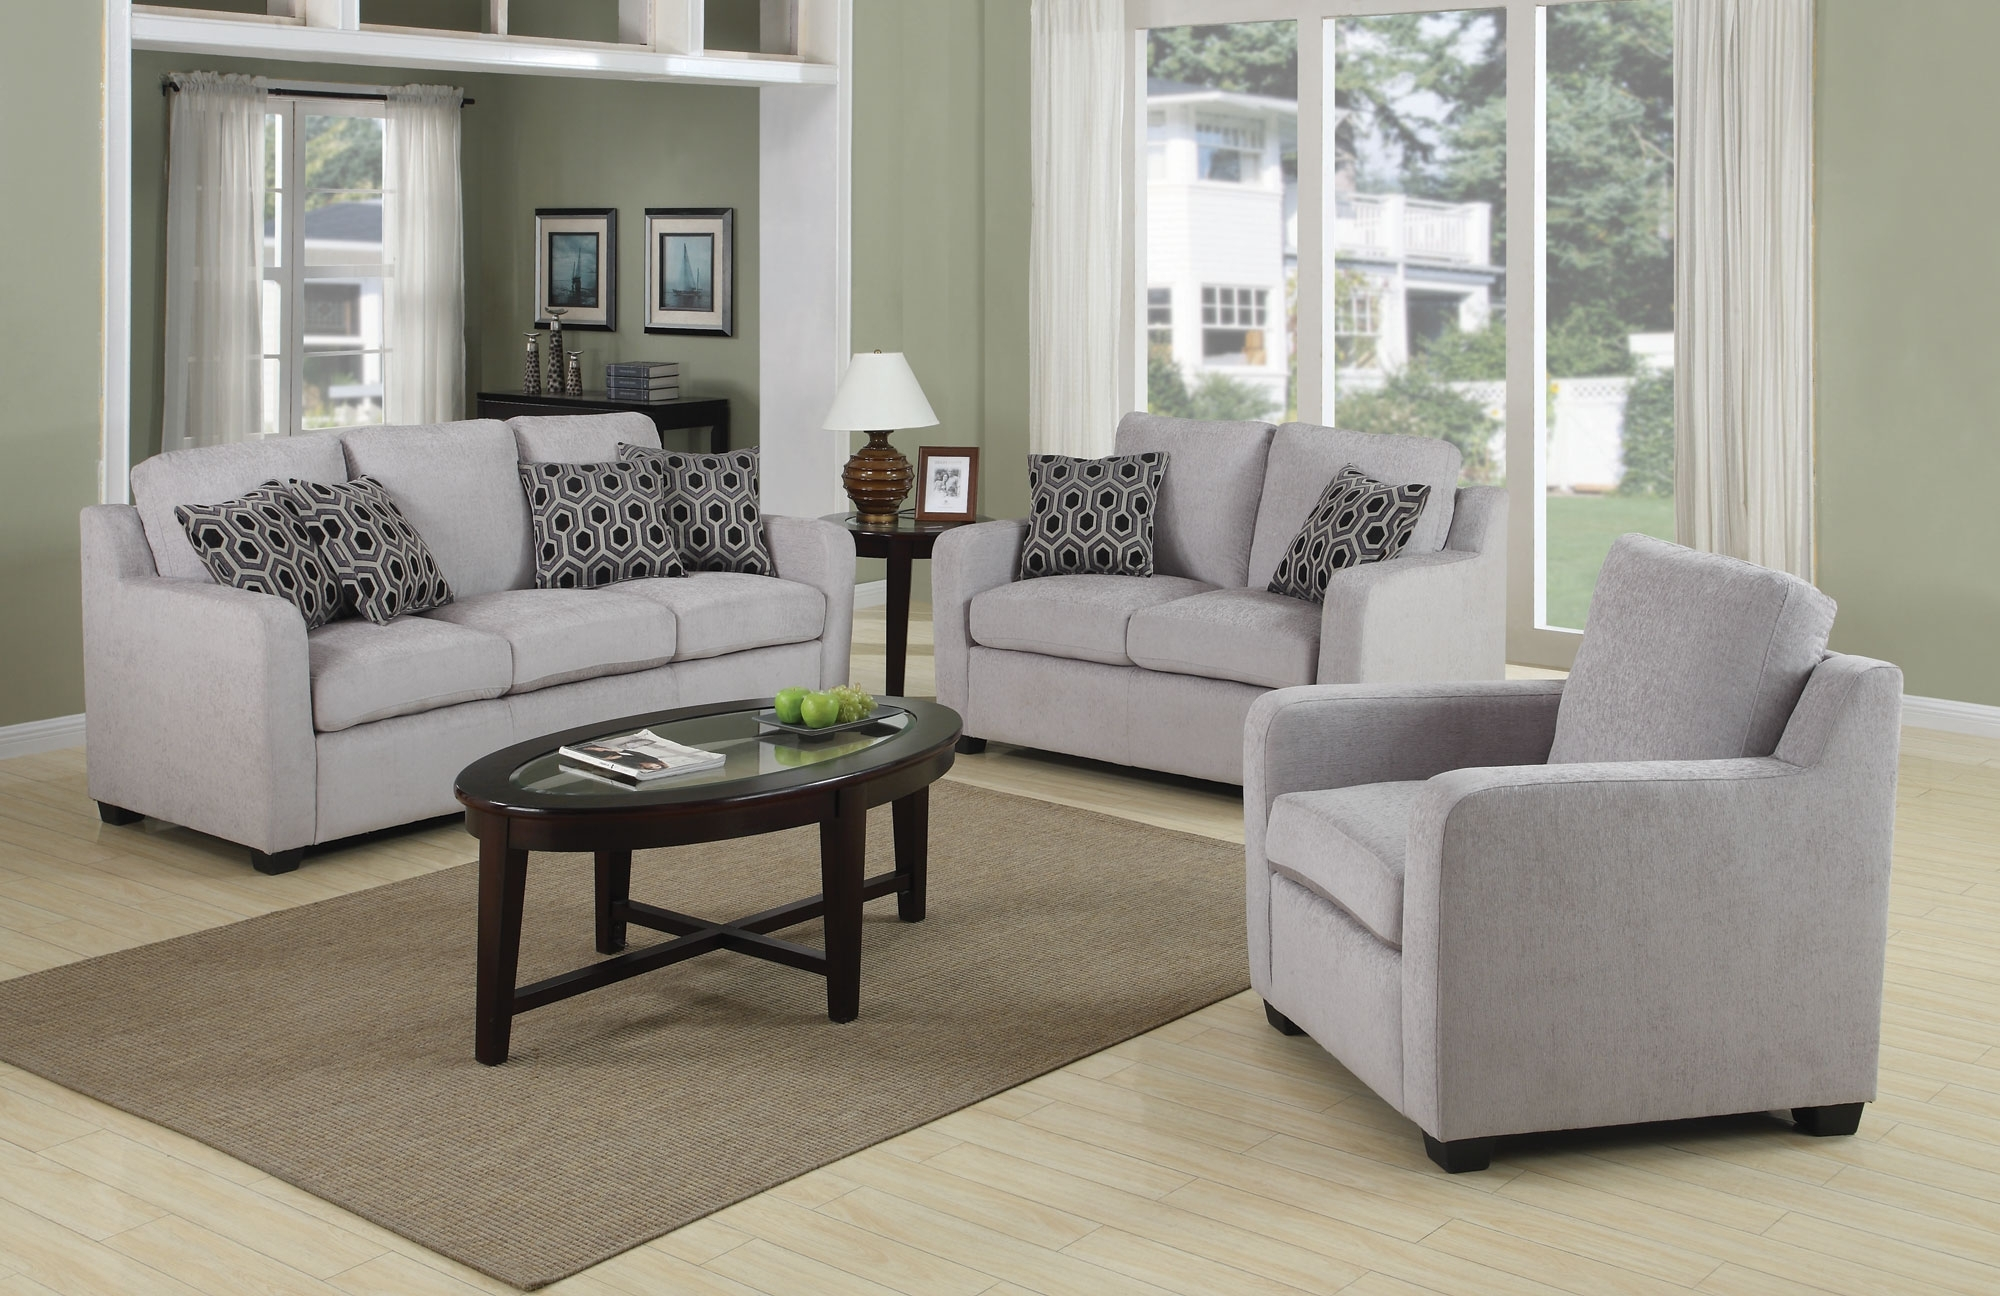 Small Sofas And Chairs Intended For 2017 Furniture: Amazing Set Of Chairs For Living Room 3 Piece Living (View 9 of 15)